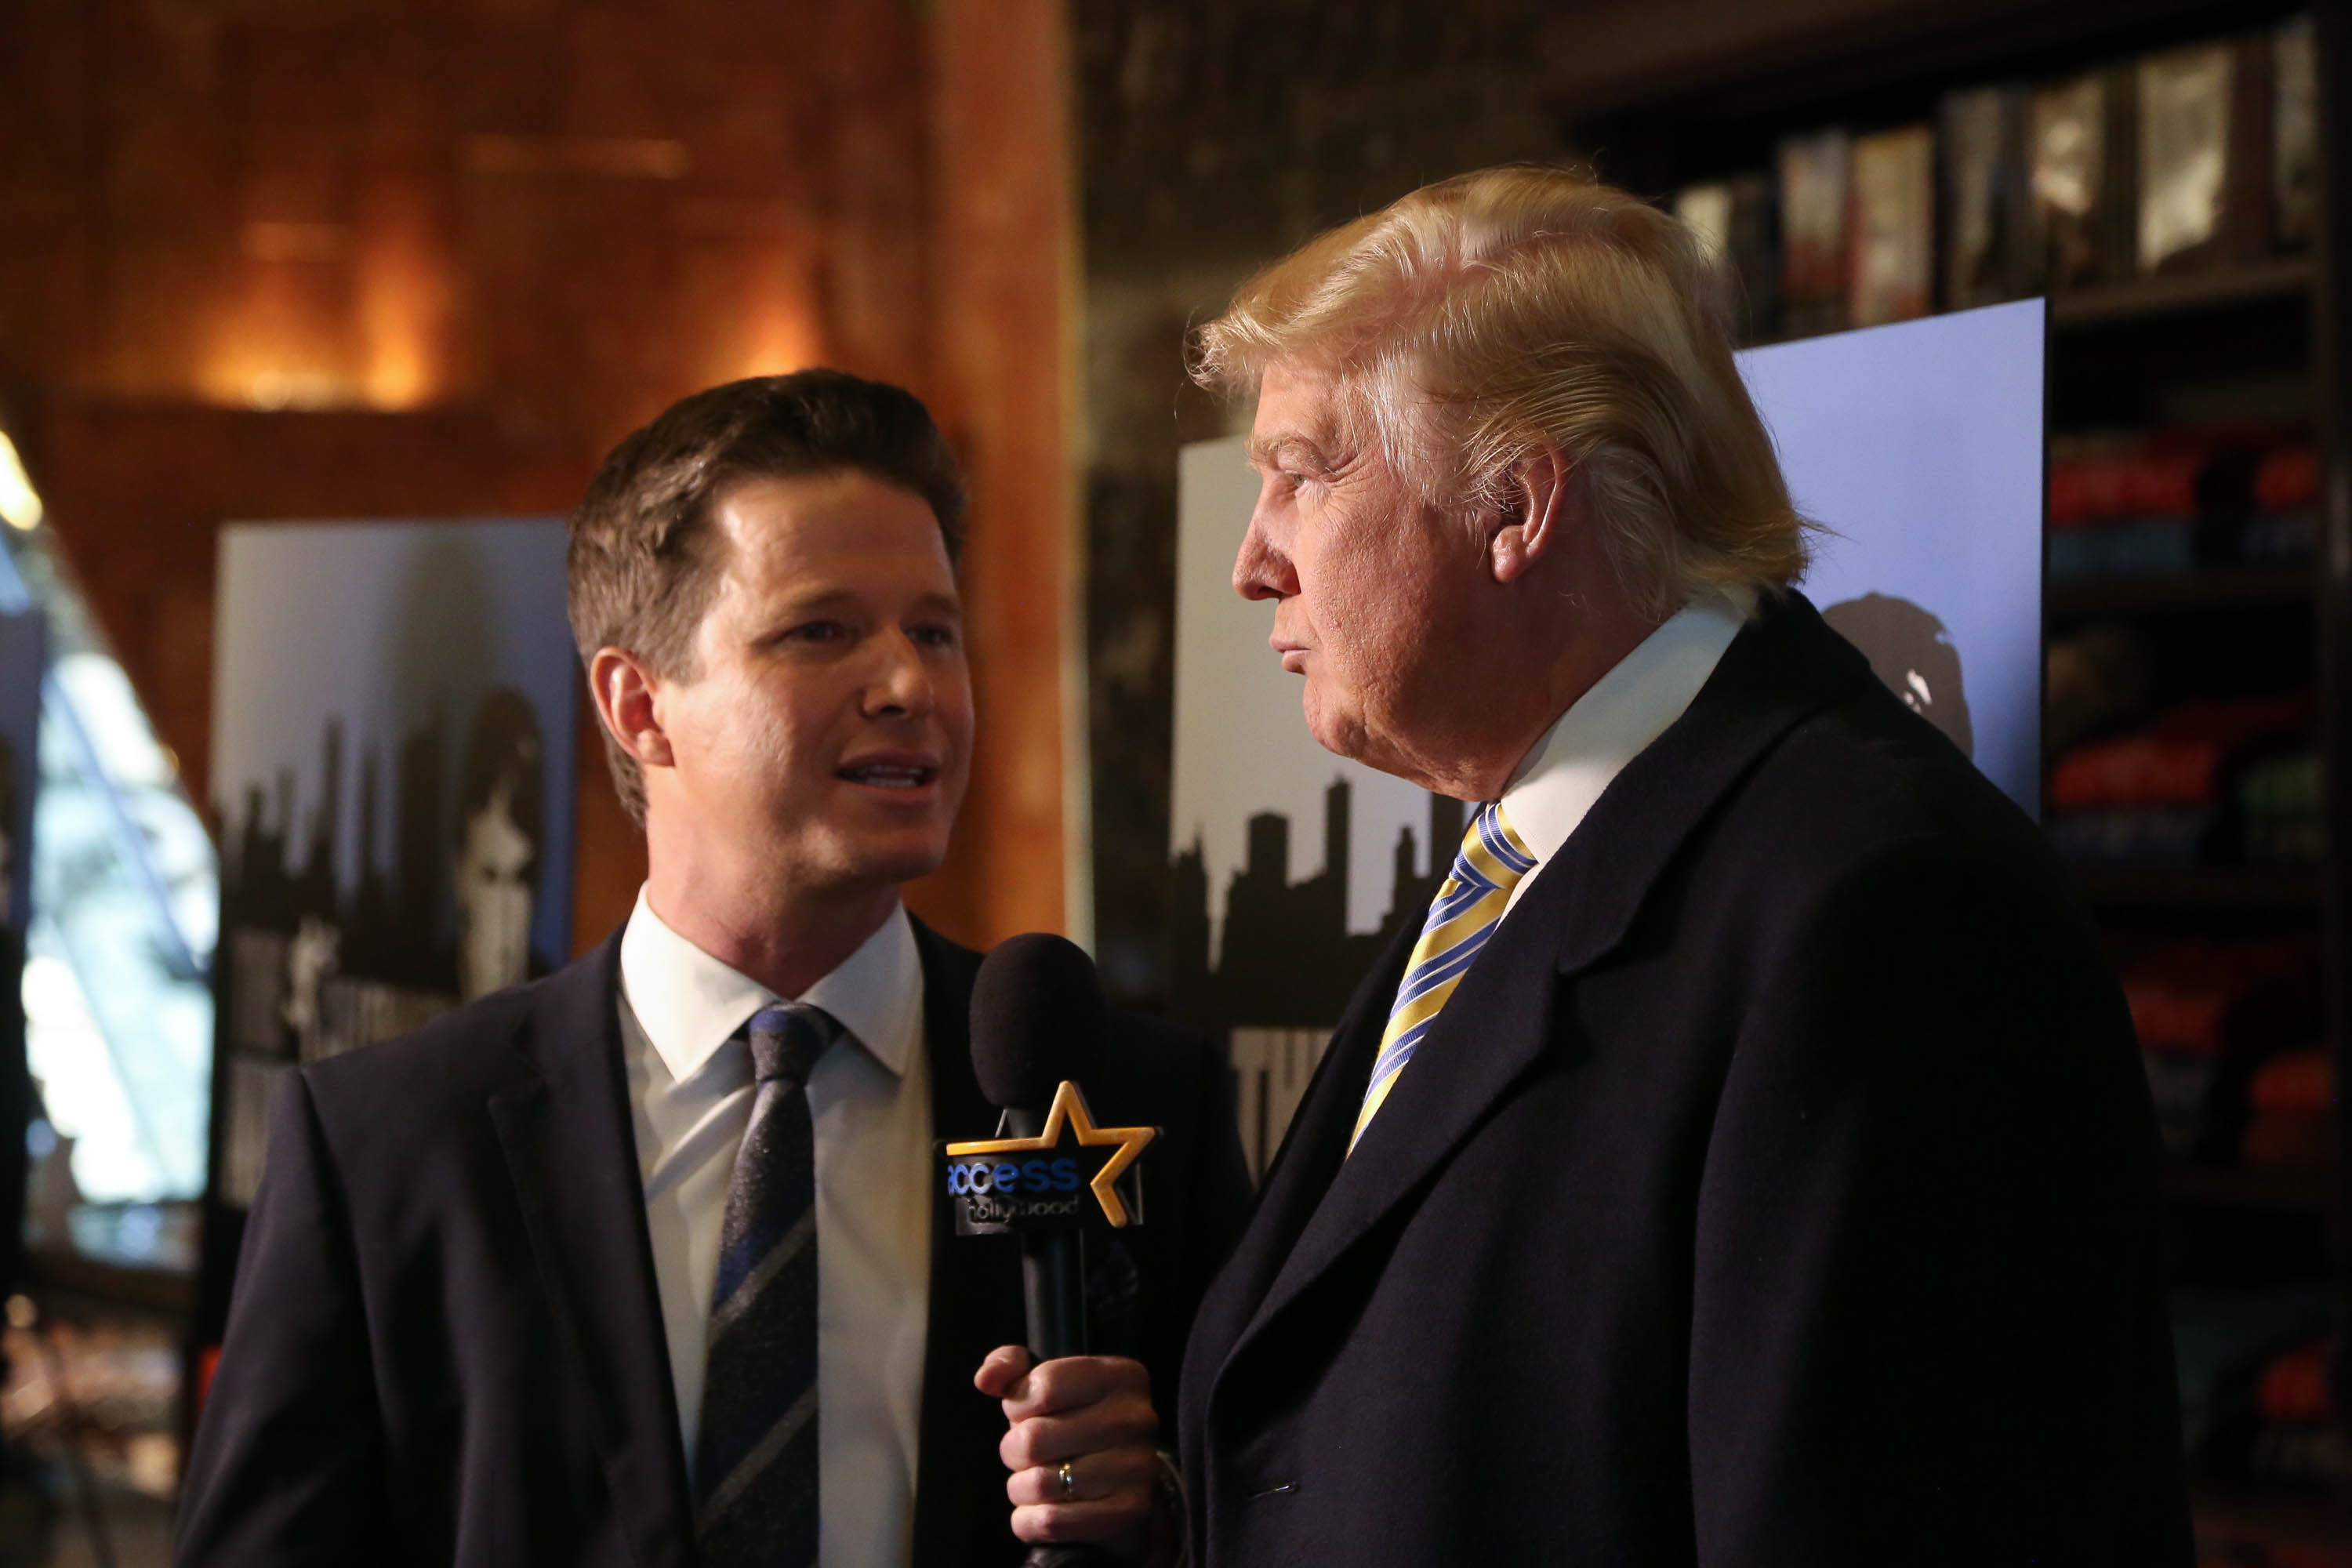 Billy Bush of Access Hollywood interviews Donald Trump at a 'Celebrity Apprentice' in 2015.